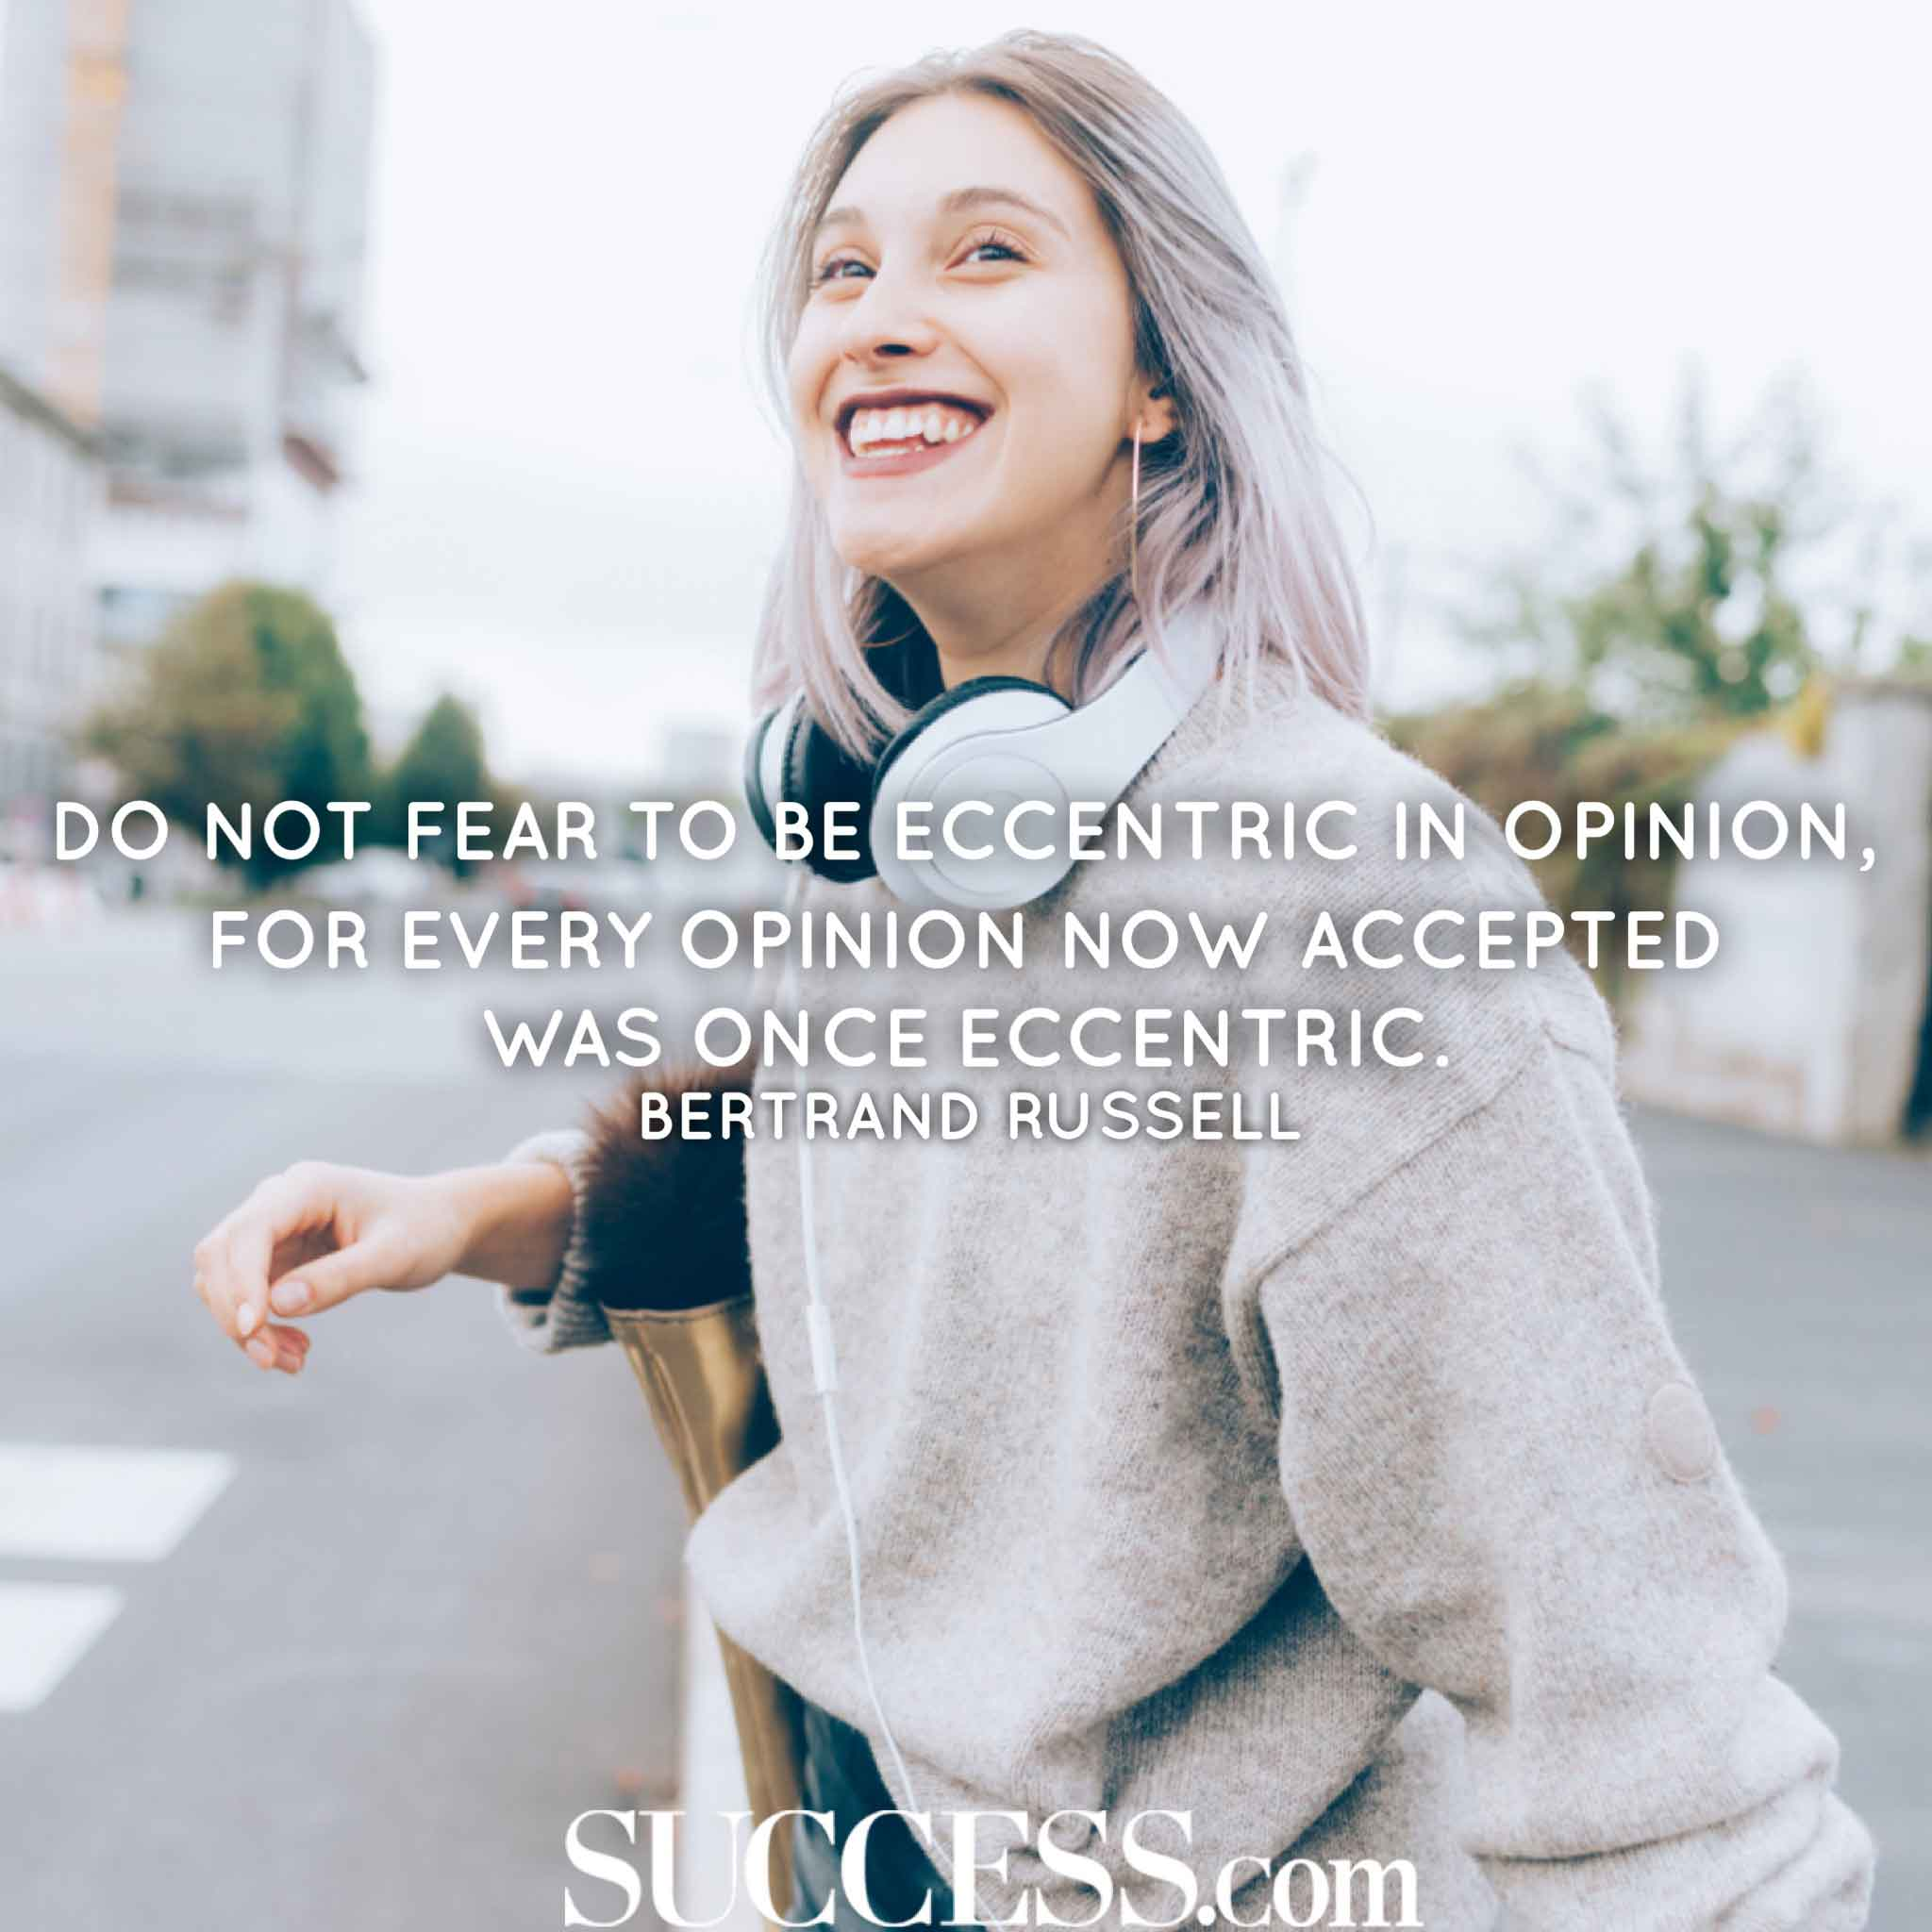 15 Brave Quotes to Inspire You to Be Yourself